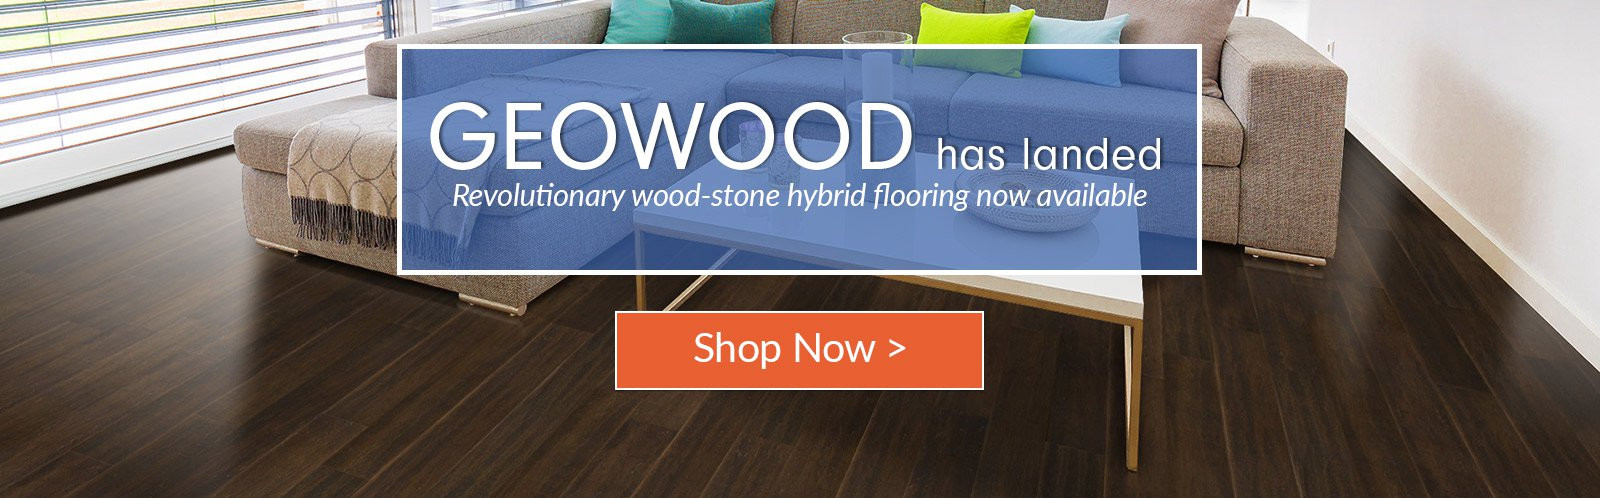 hardwood flooring distributors seattle of green building construction materials and home decor cali bamboo pertaining to geowood launch homepage slider